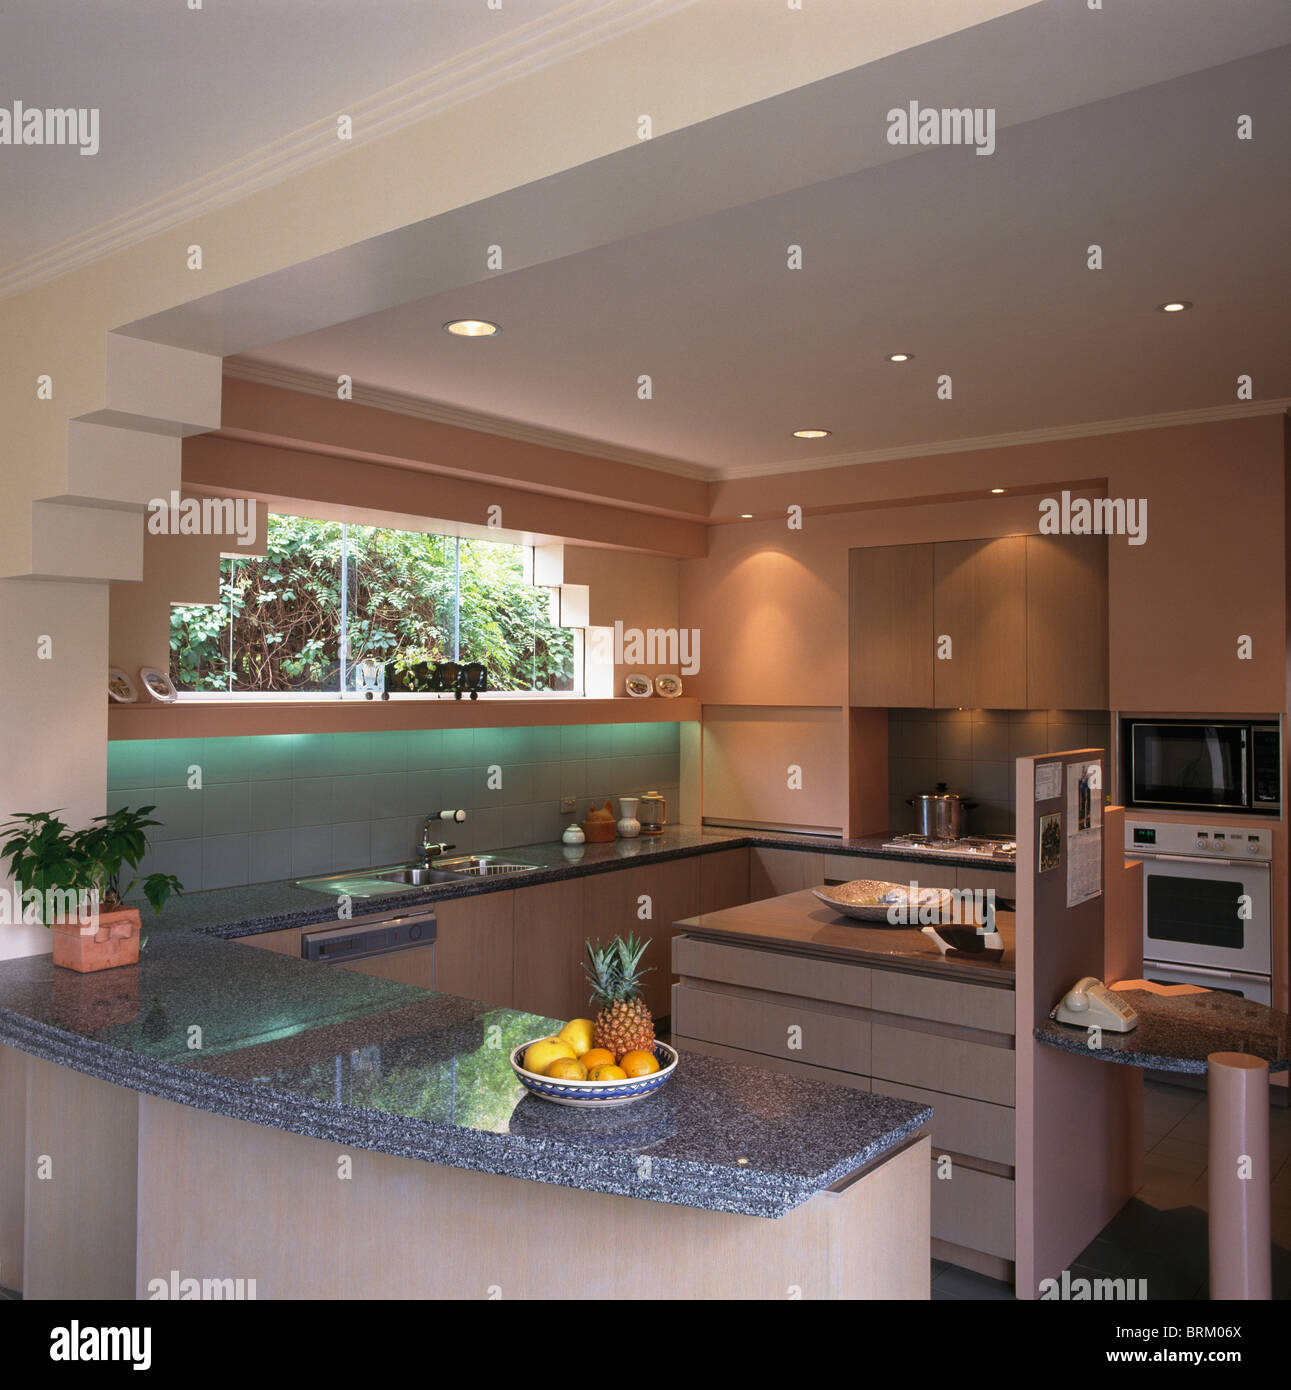 Kitchen Interior With Pink Furniture And Tiles Stock: Grey Granite Worktop On Peninsular Unit In Modern Pink